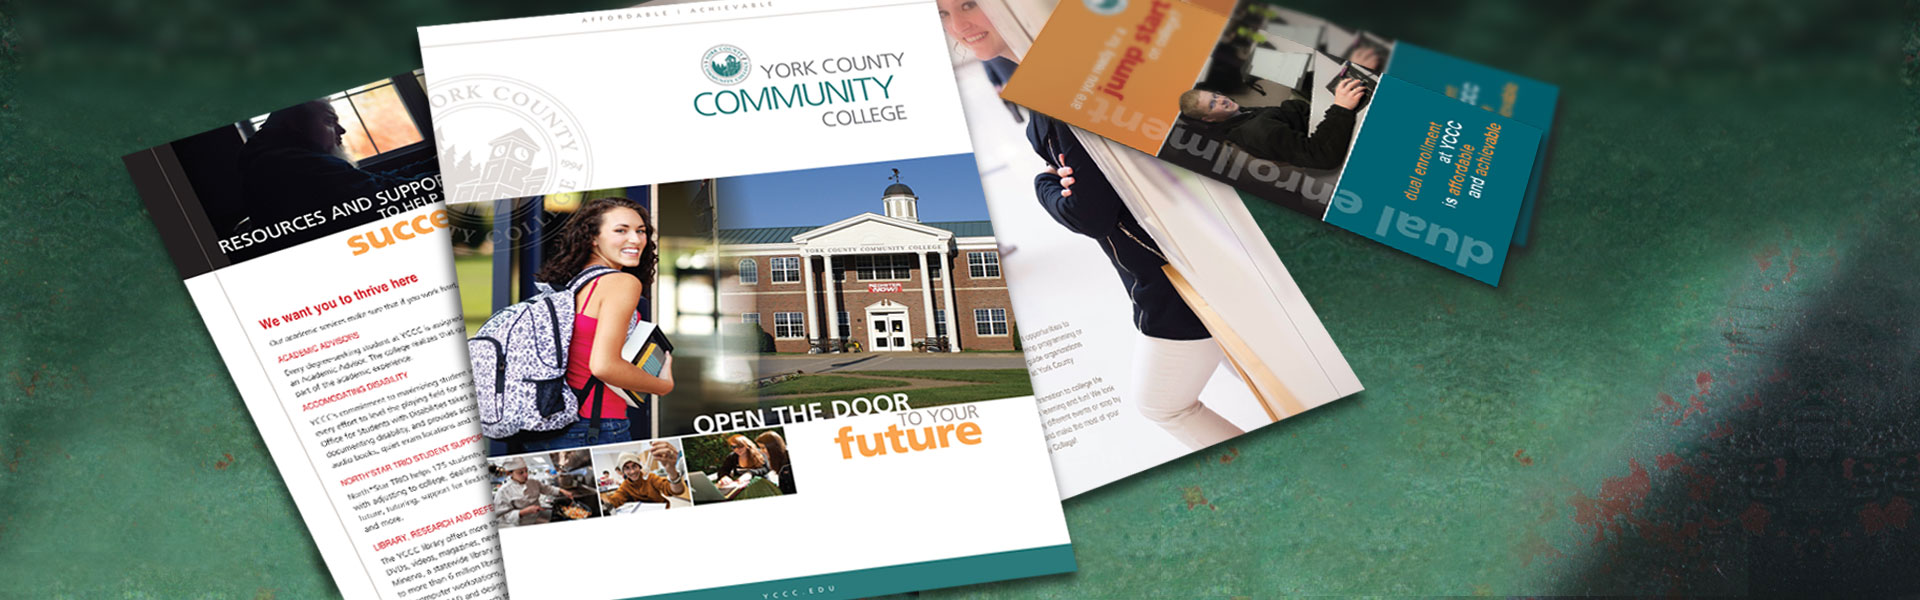 York County Community College print communications